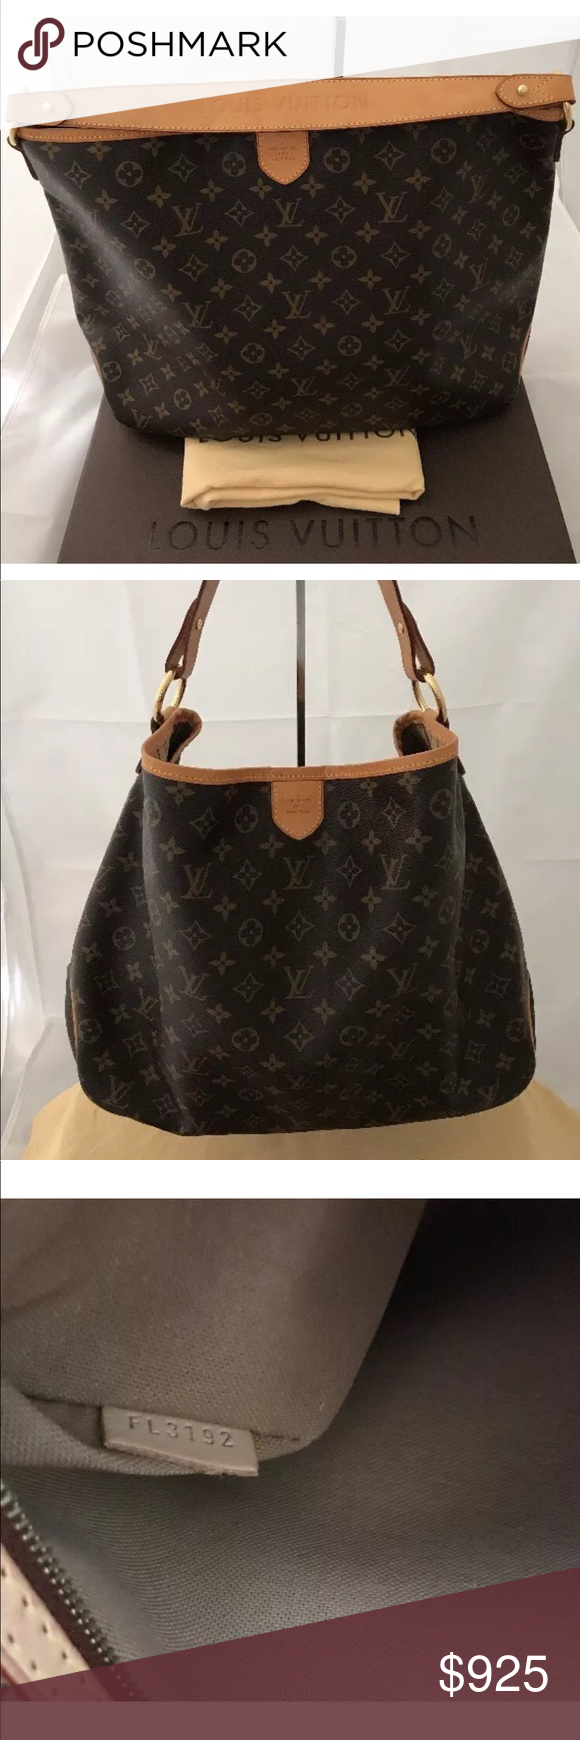 e86d997dffd4 Selling this LOUIS VUITTON DELIGHTFUL MM 💯 percent AUTHENTIC. on Poshmark!  My username is